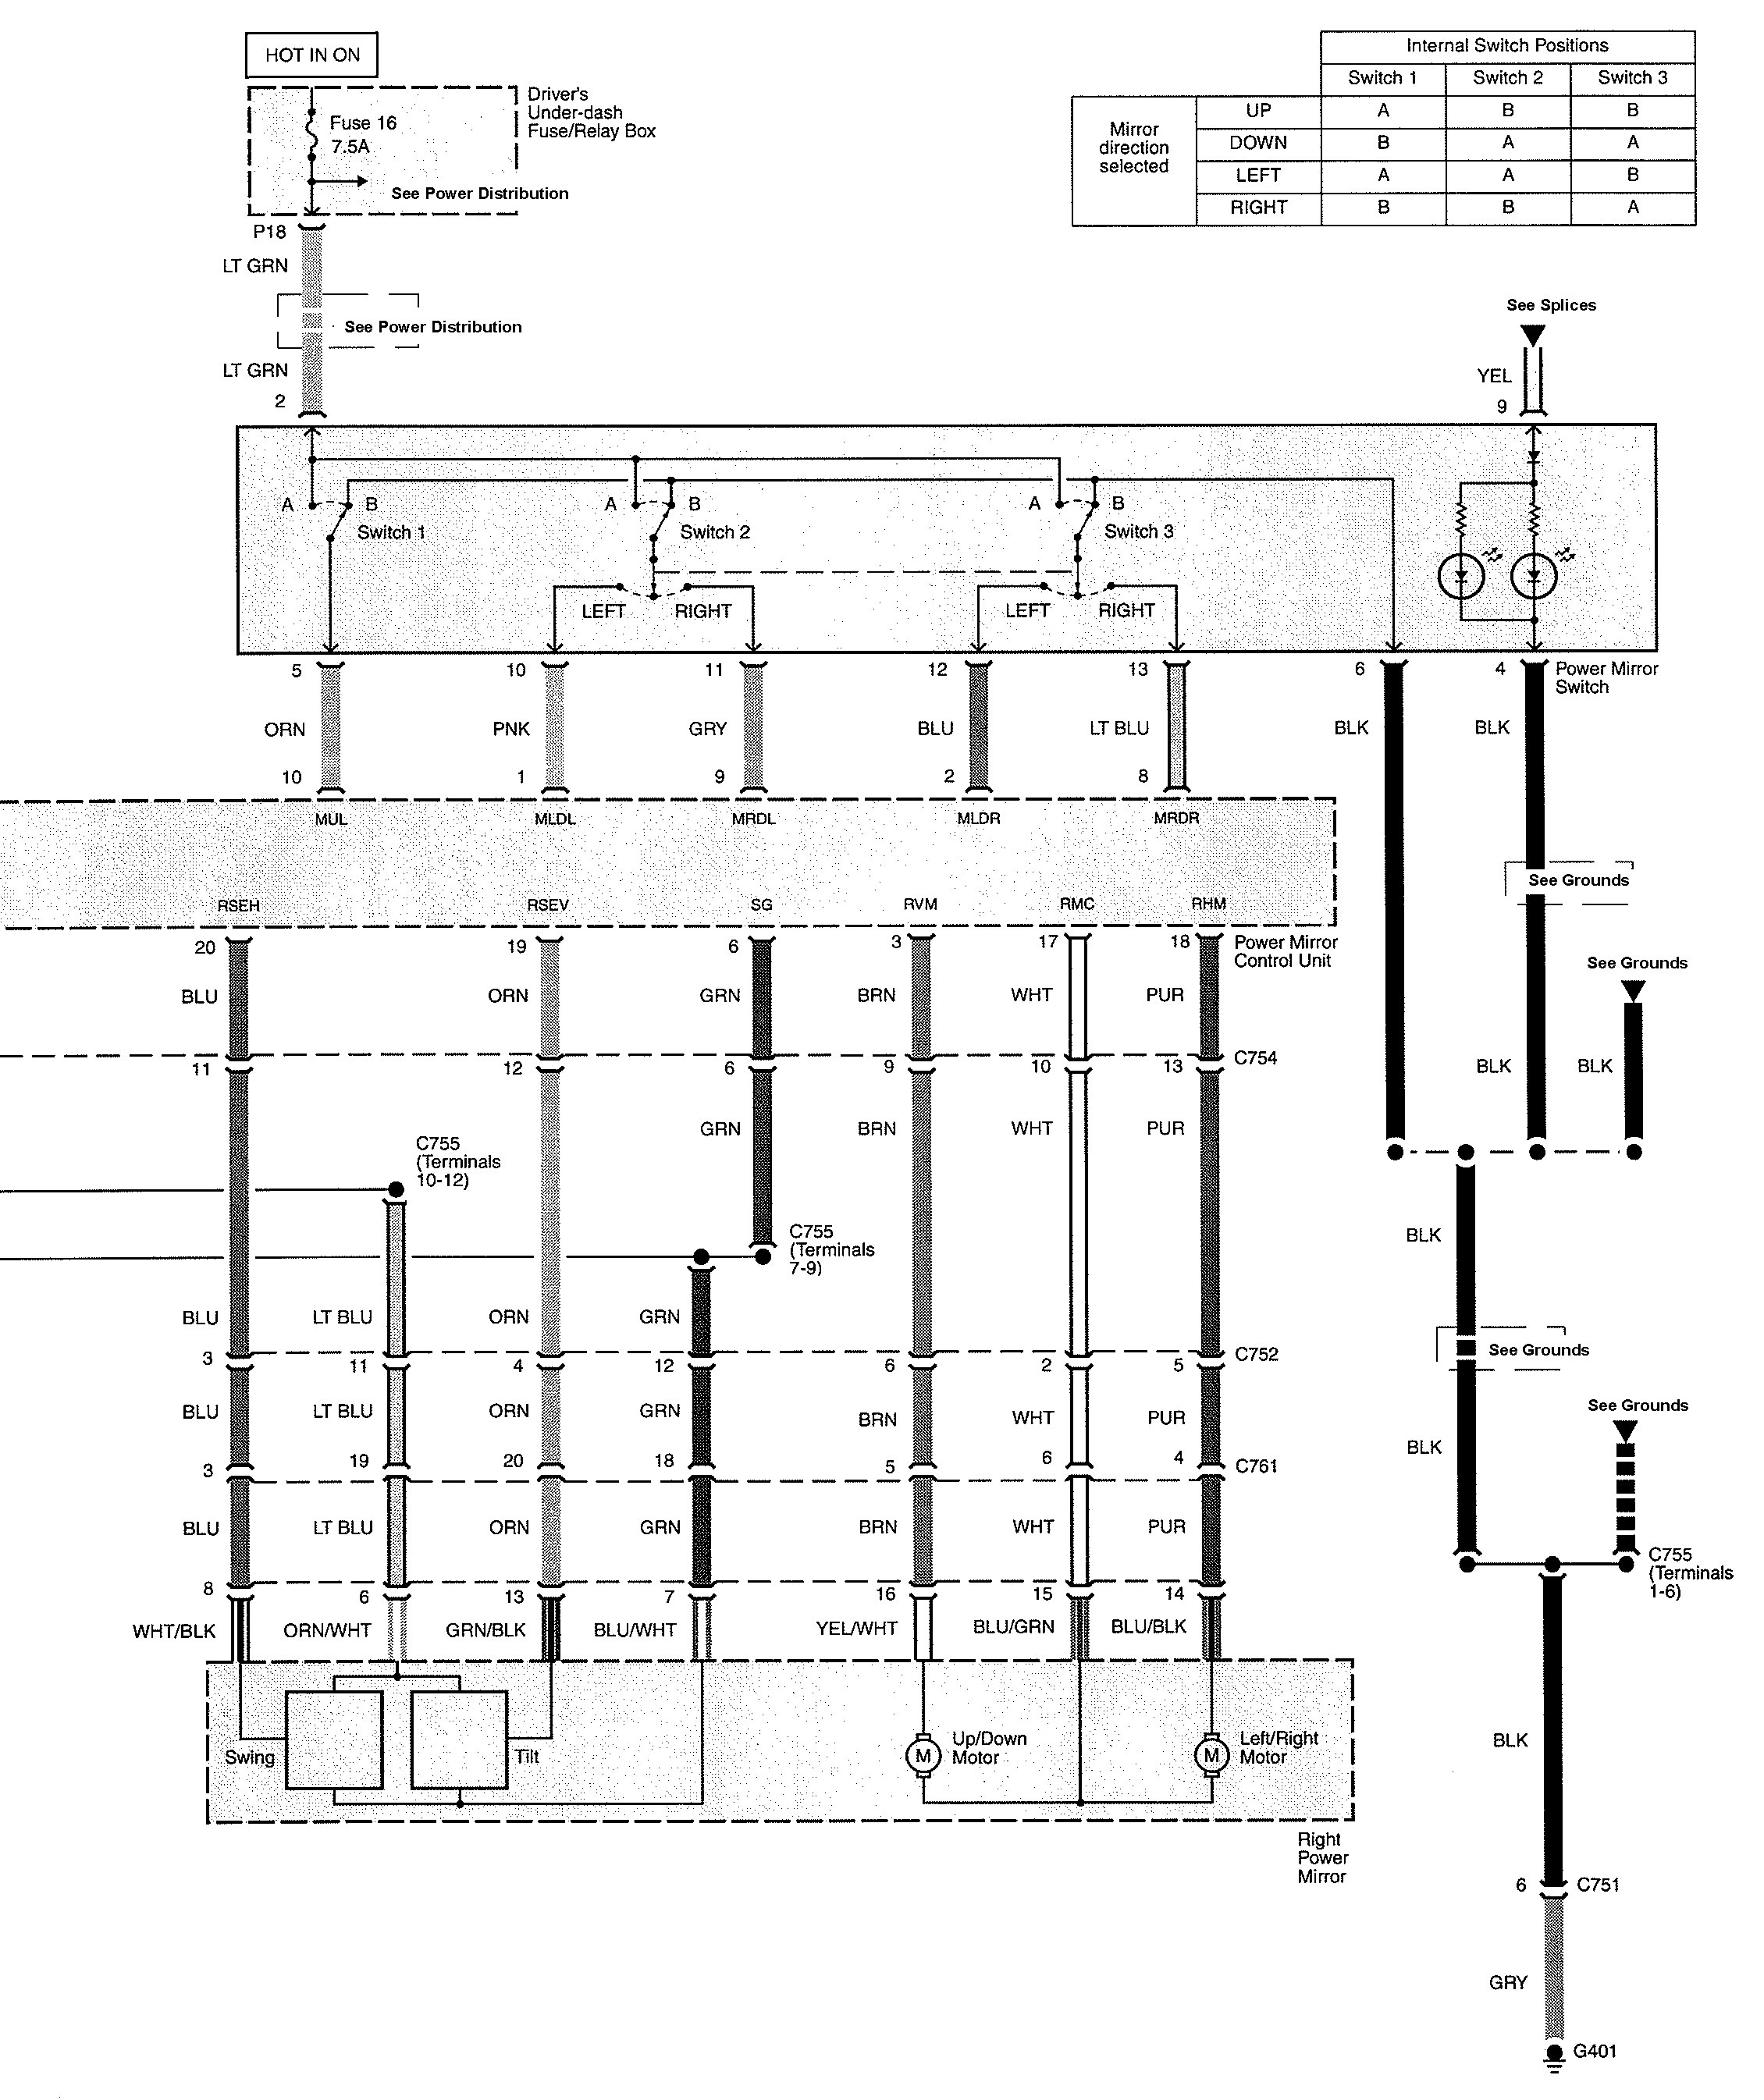 wire diagram 2010 acura tl explore wiring diagram on the net • wire diagram 2010 acura tl u2022 wiring diagram for 2008 acura tl 2010 acura tl interior